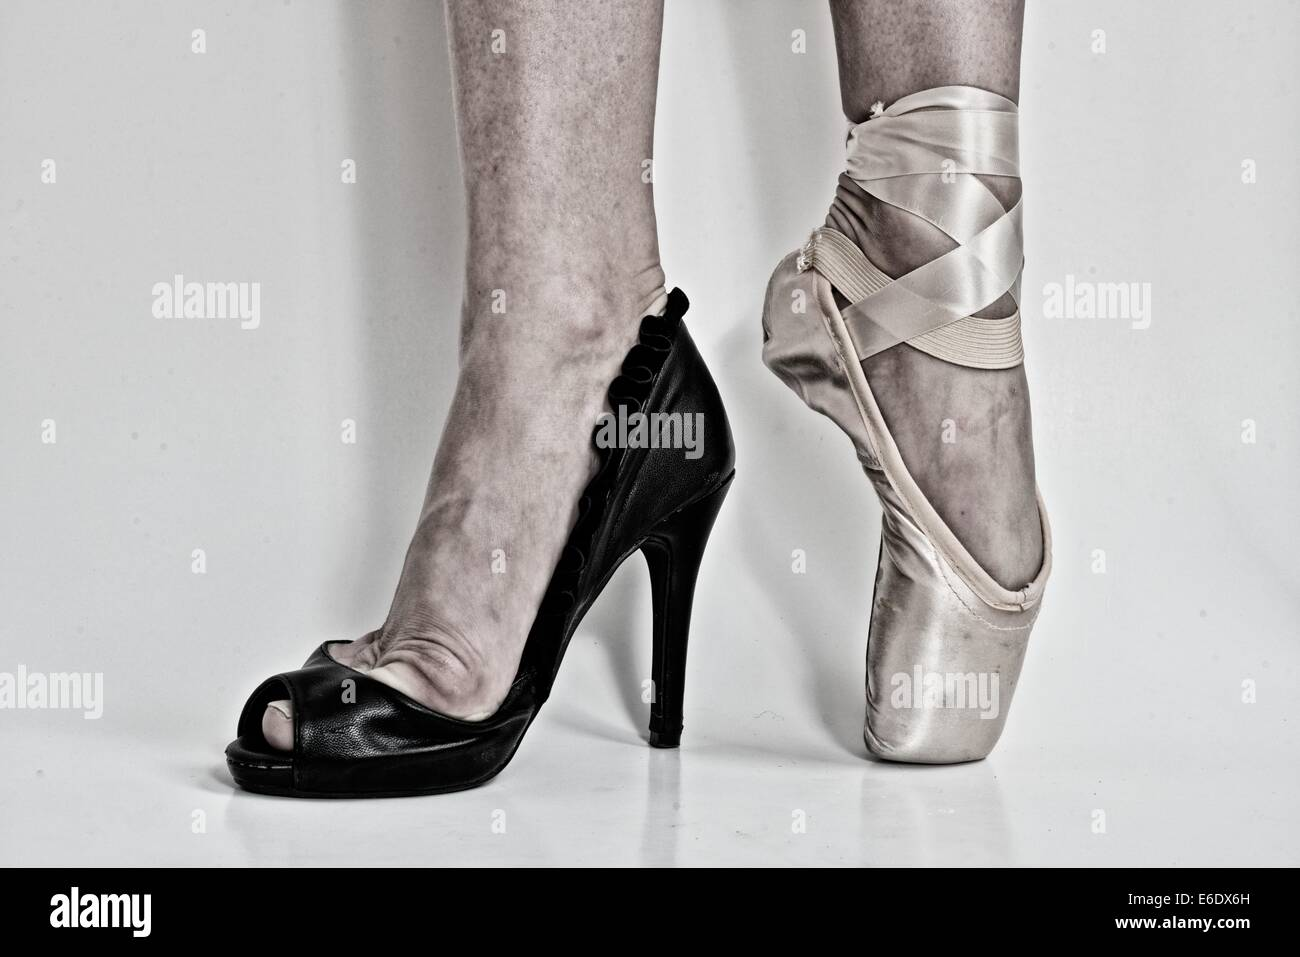 legs of a ballerina with a black high heel shoe in one